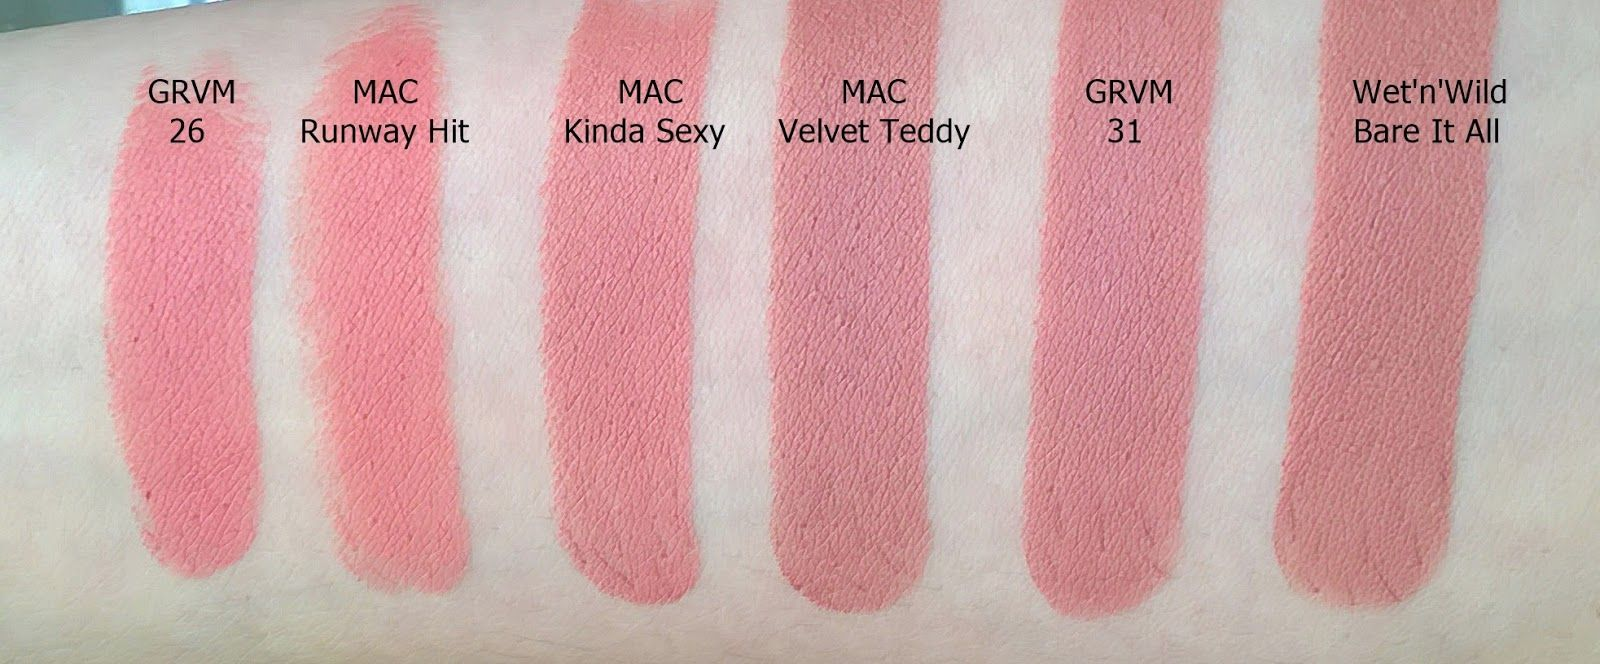 Pin by Pritzy on Lipstick Dupes | Mac dupes, Lipstick dupes